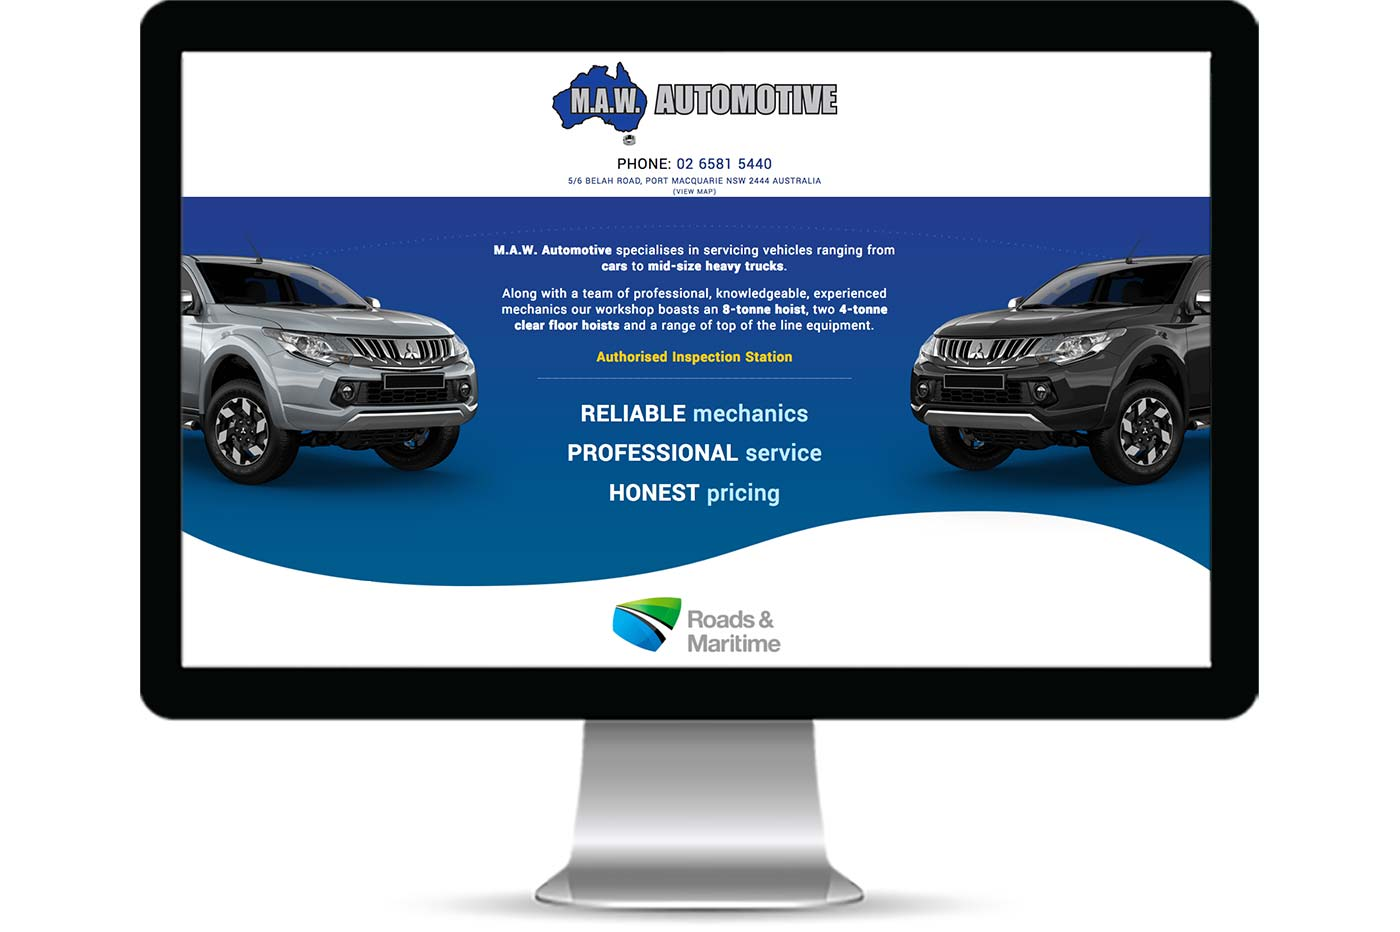 Advantage iT Solutions Web Portfolio - M.A.W. Automotive